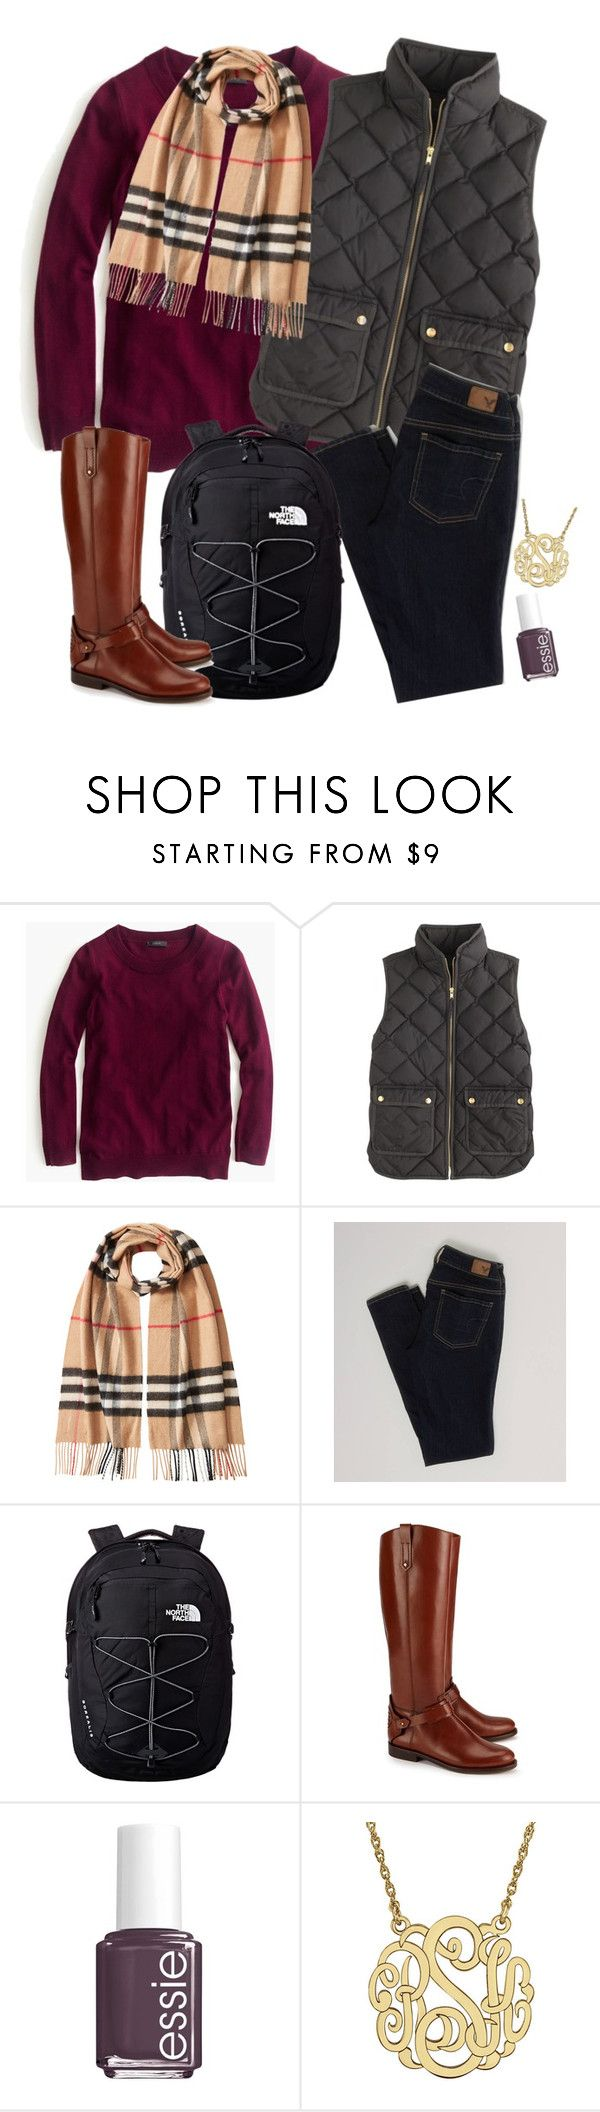 """OOTD from 11.16.15"" by adorably-clueless ❤ liked on Polyvore featuring J.Crew, Burberry, American Eagle Outfitters, The North Face, Tory Burch and Essie"